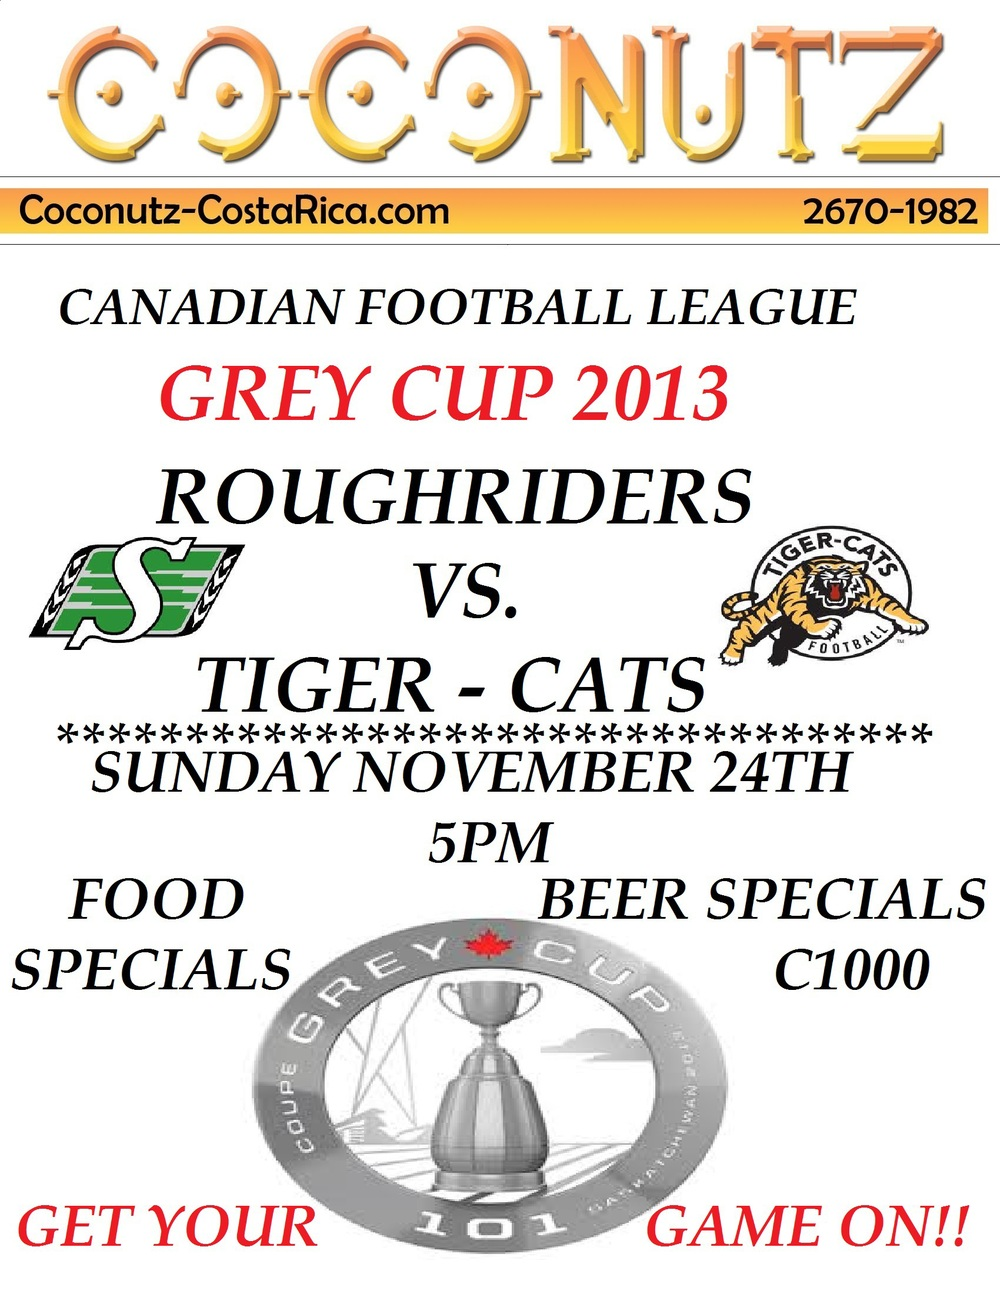 CANADIAN GREY CUP 2013.jpg